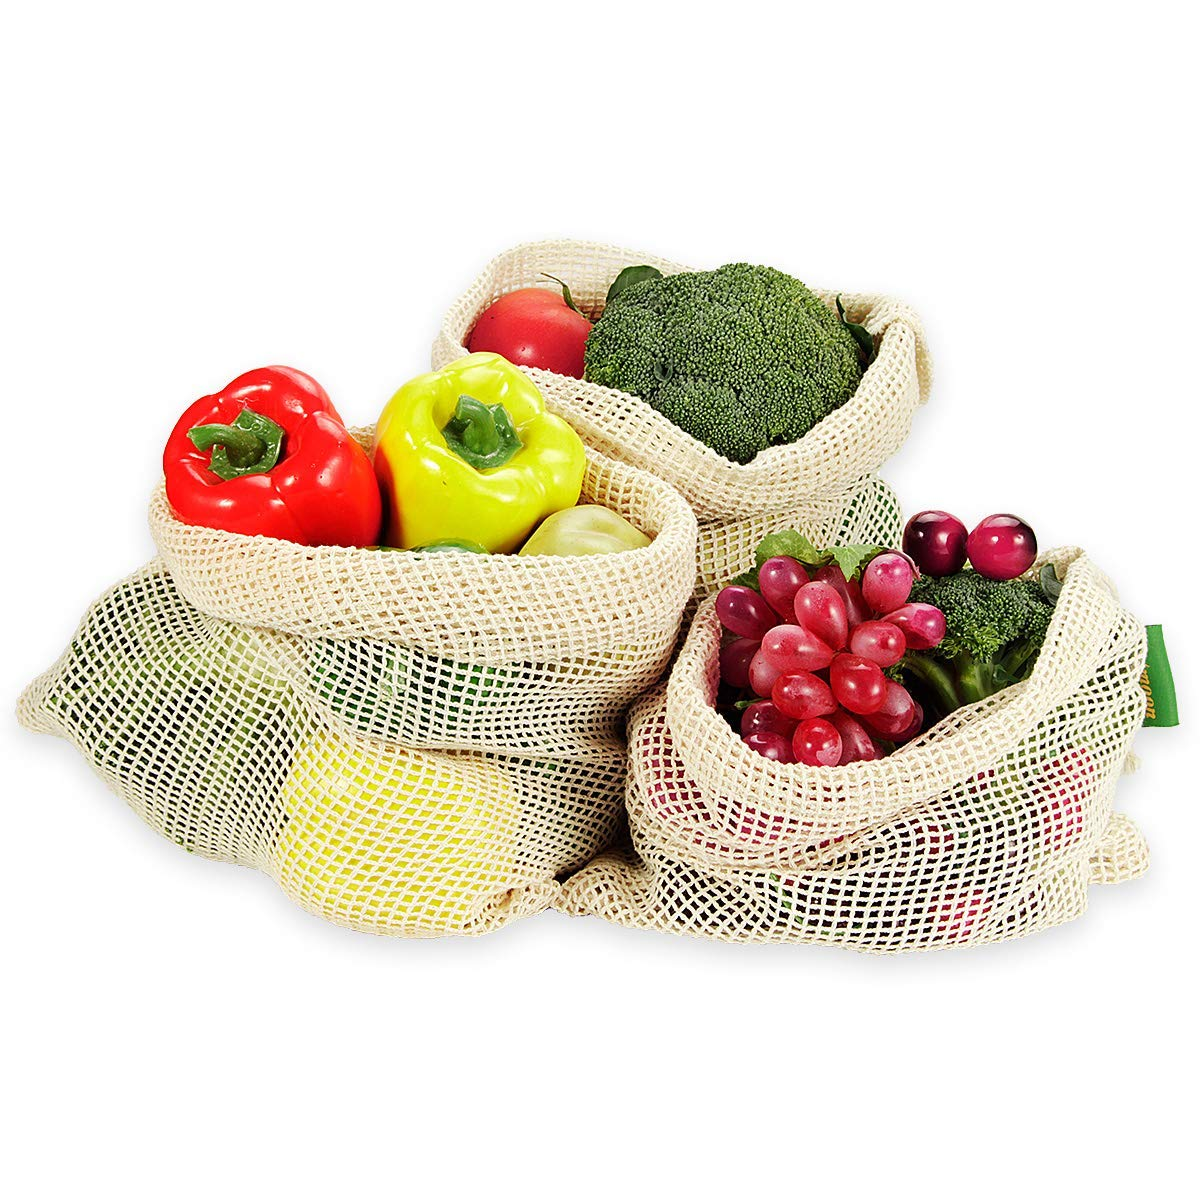 Reusable Mesh Produce Bags mesh bags for fruits and vegetables with GOTS certificate